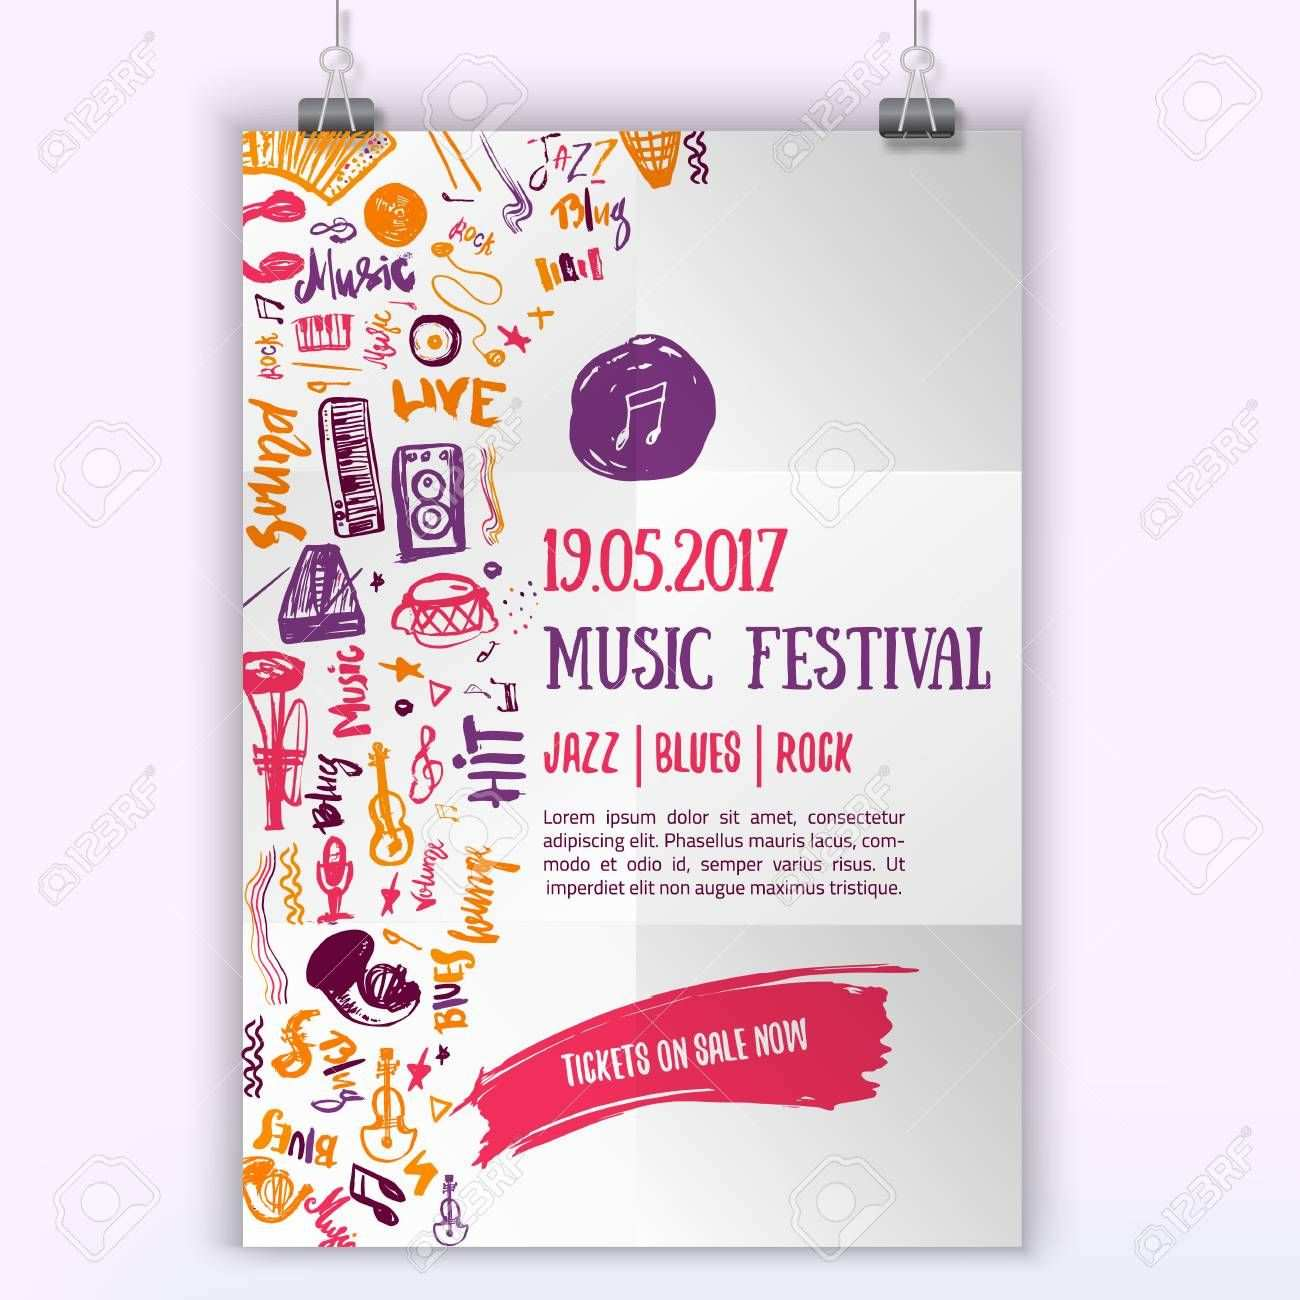 Music Concert Vector Poster Template Can Be Used For Printable